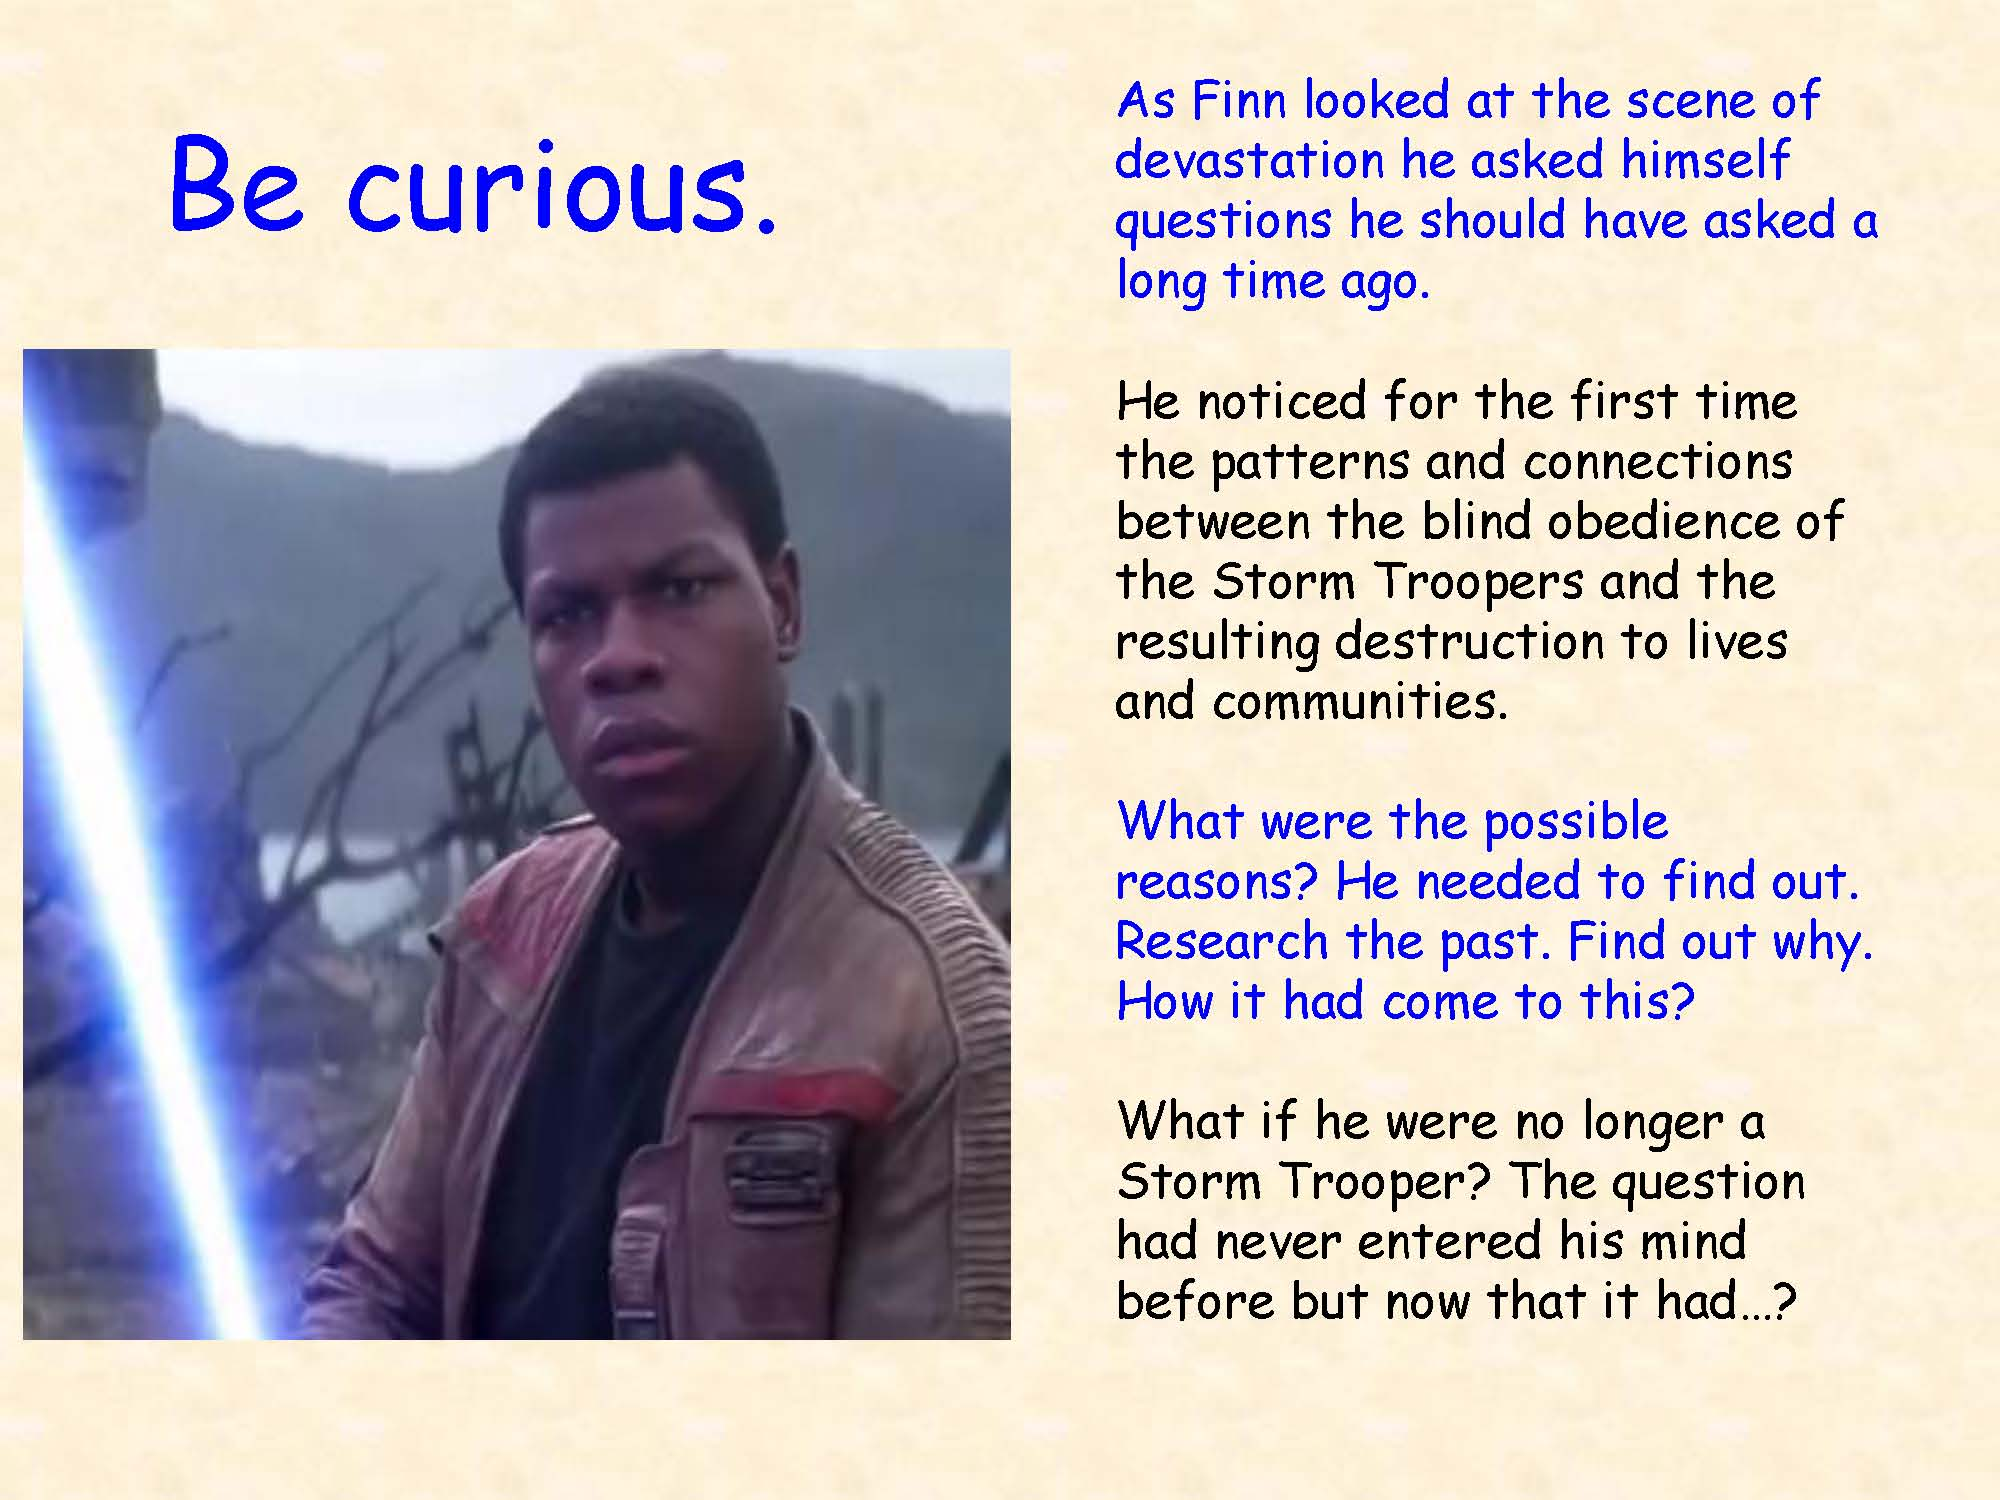 Finn for Curiosity